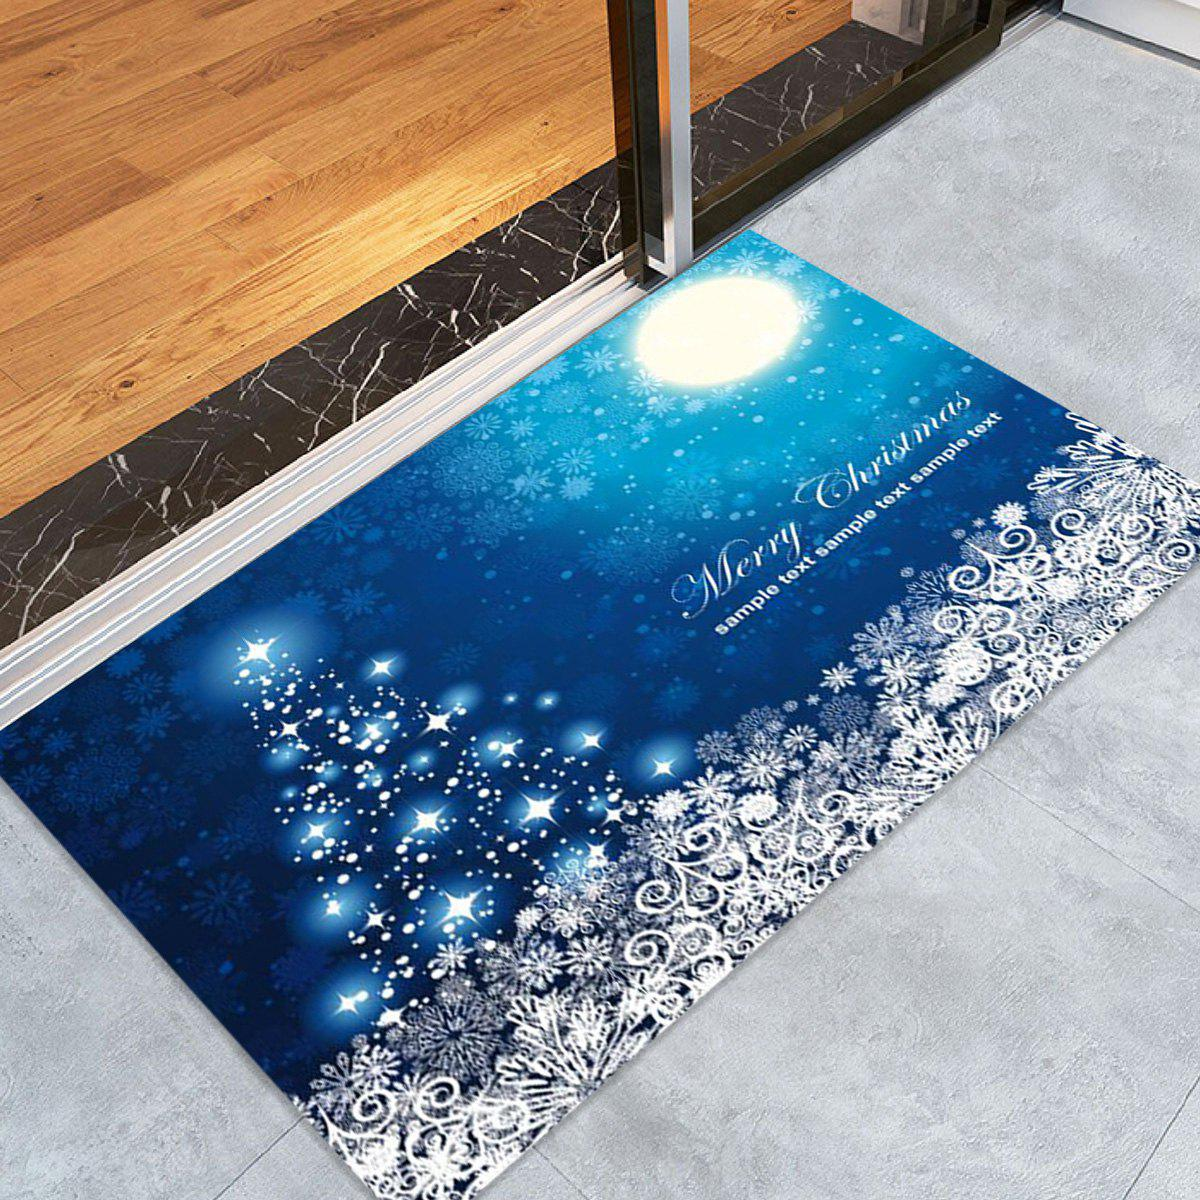 Sparkling Christmas Tree Snowflake Print Nonslip Fleece Bath Mat - BLUE W16 INCH * L24 INCH